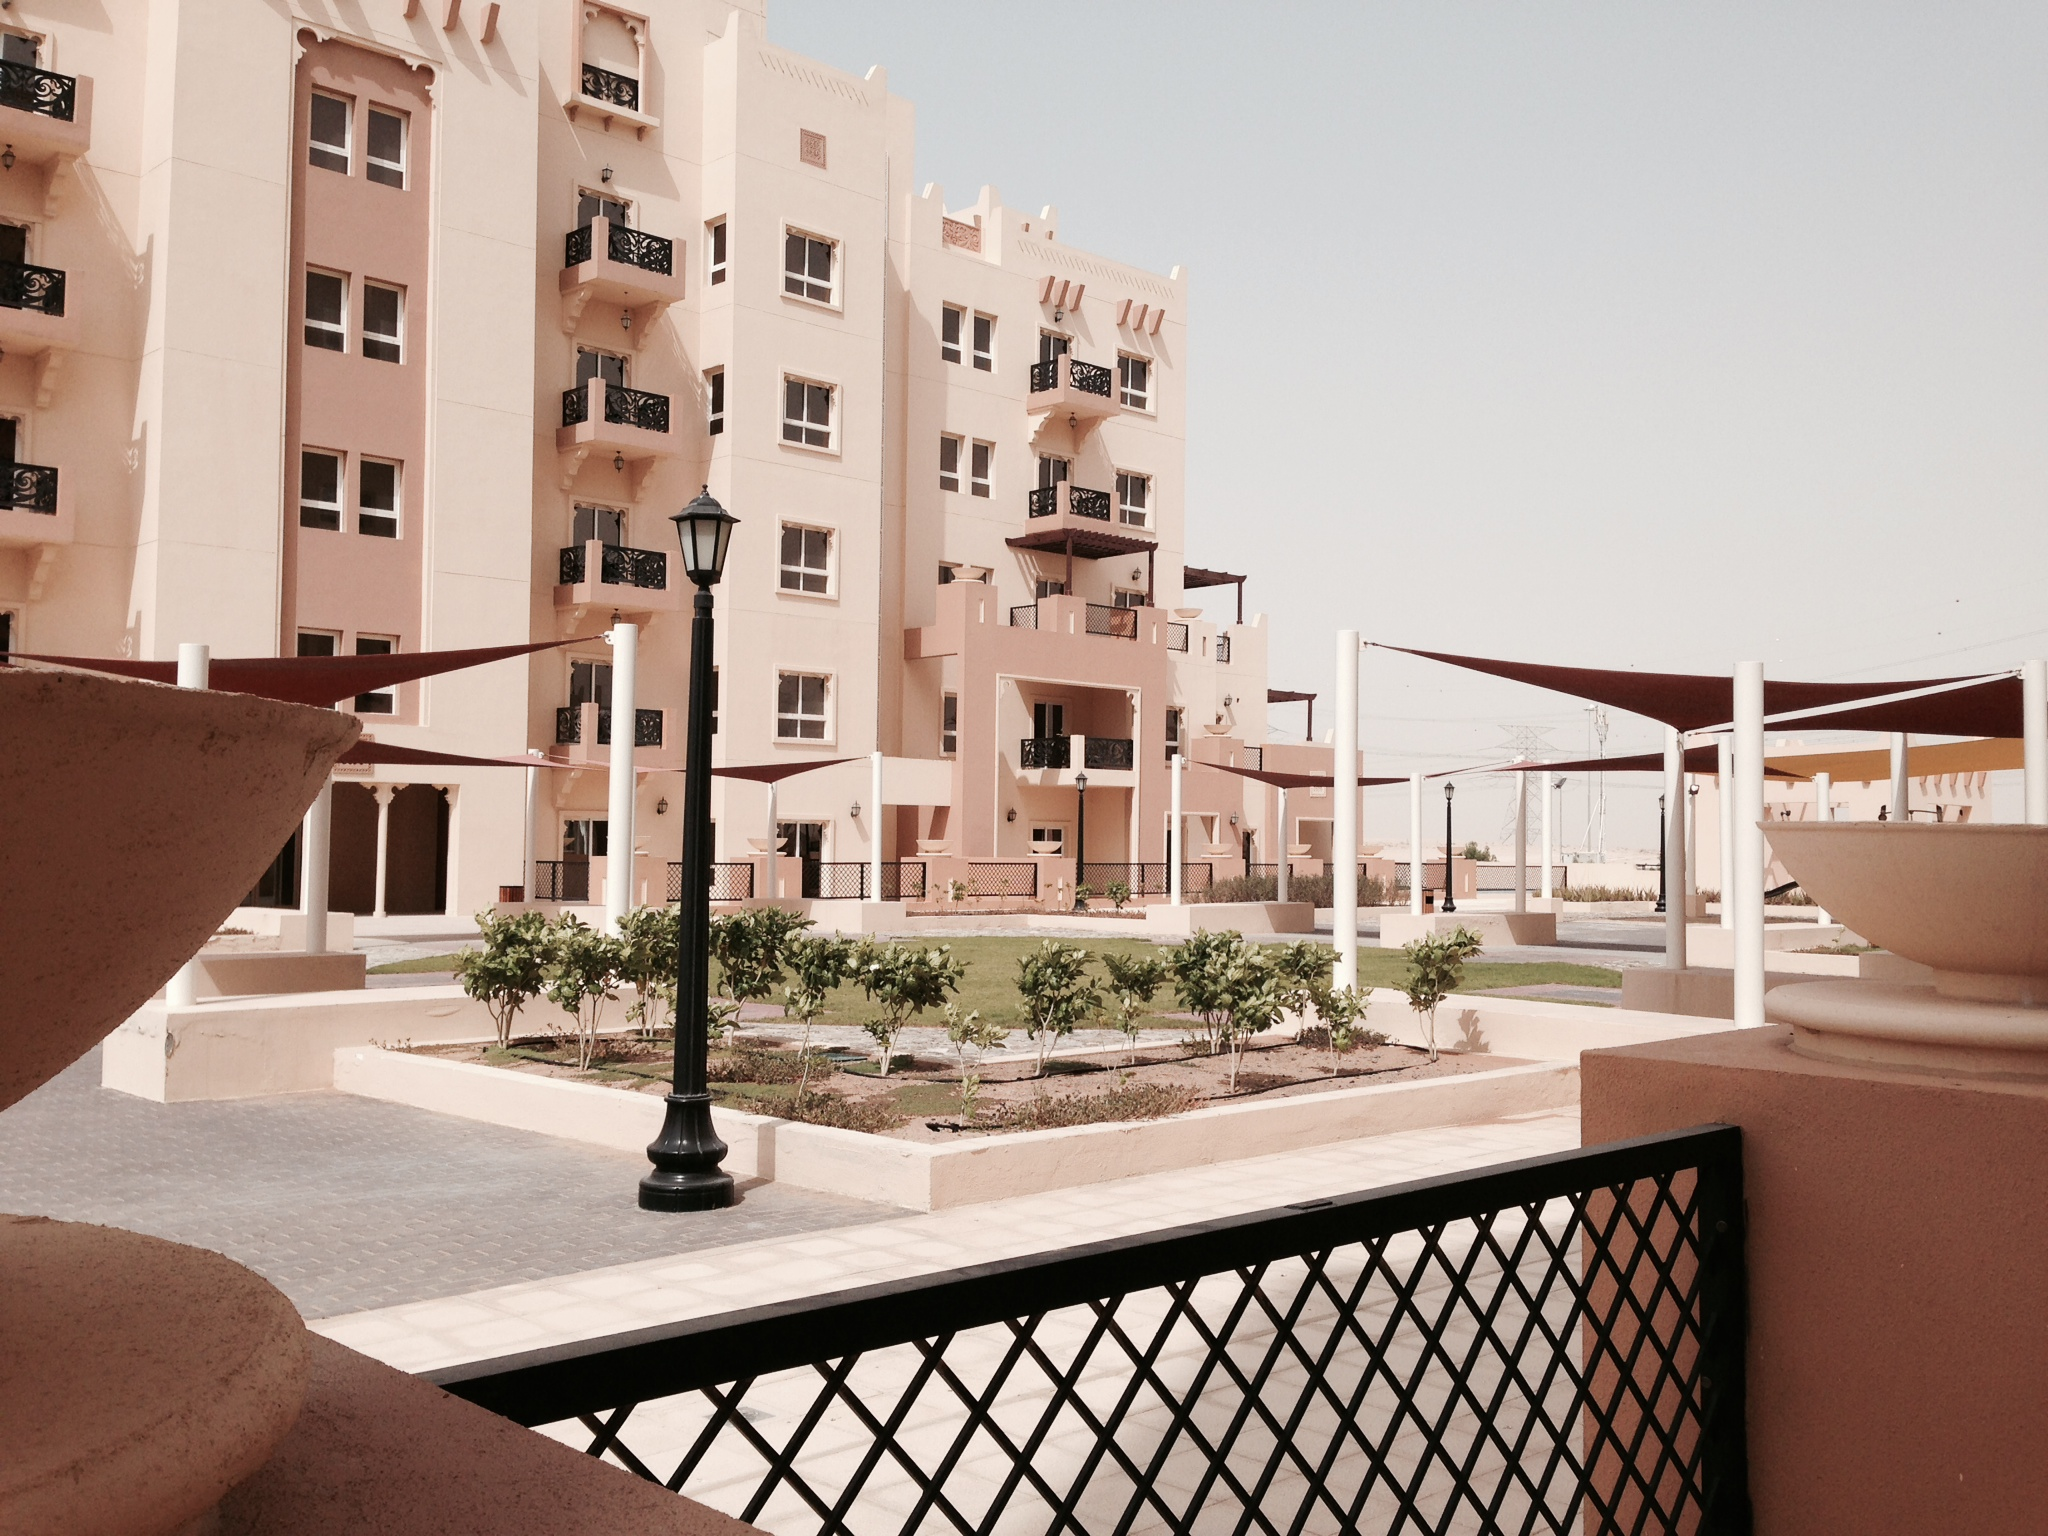 3 Beds Apt with Large Terrace on Podium.